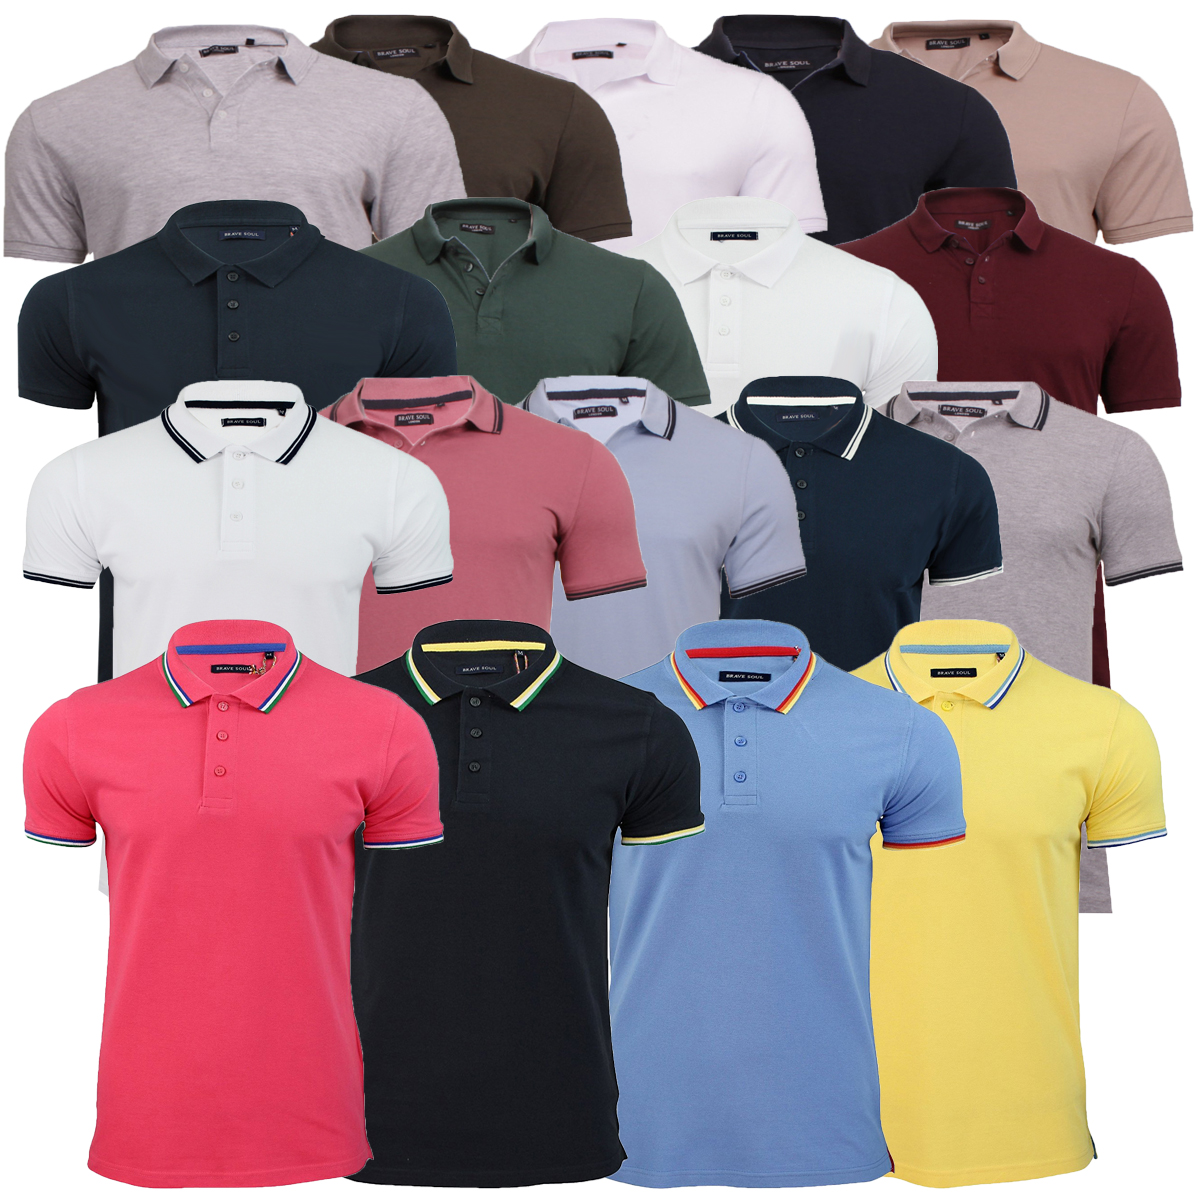 cecaaffb Mens Brave Soul Polo Collection Golf Top Short Sleeve Warsaw Helix Hero  Fyodor